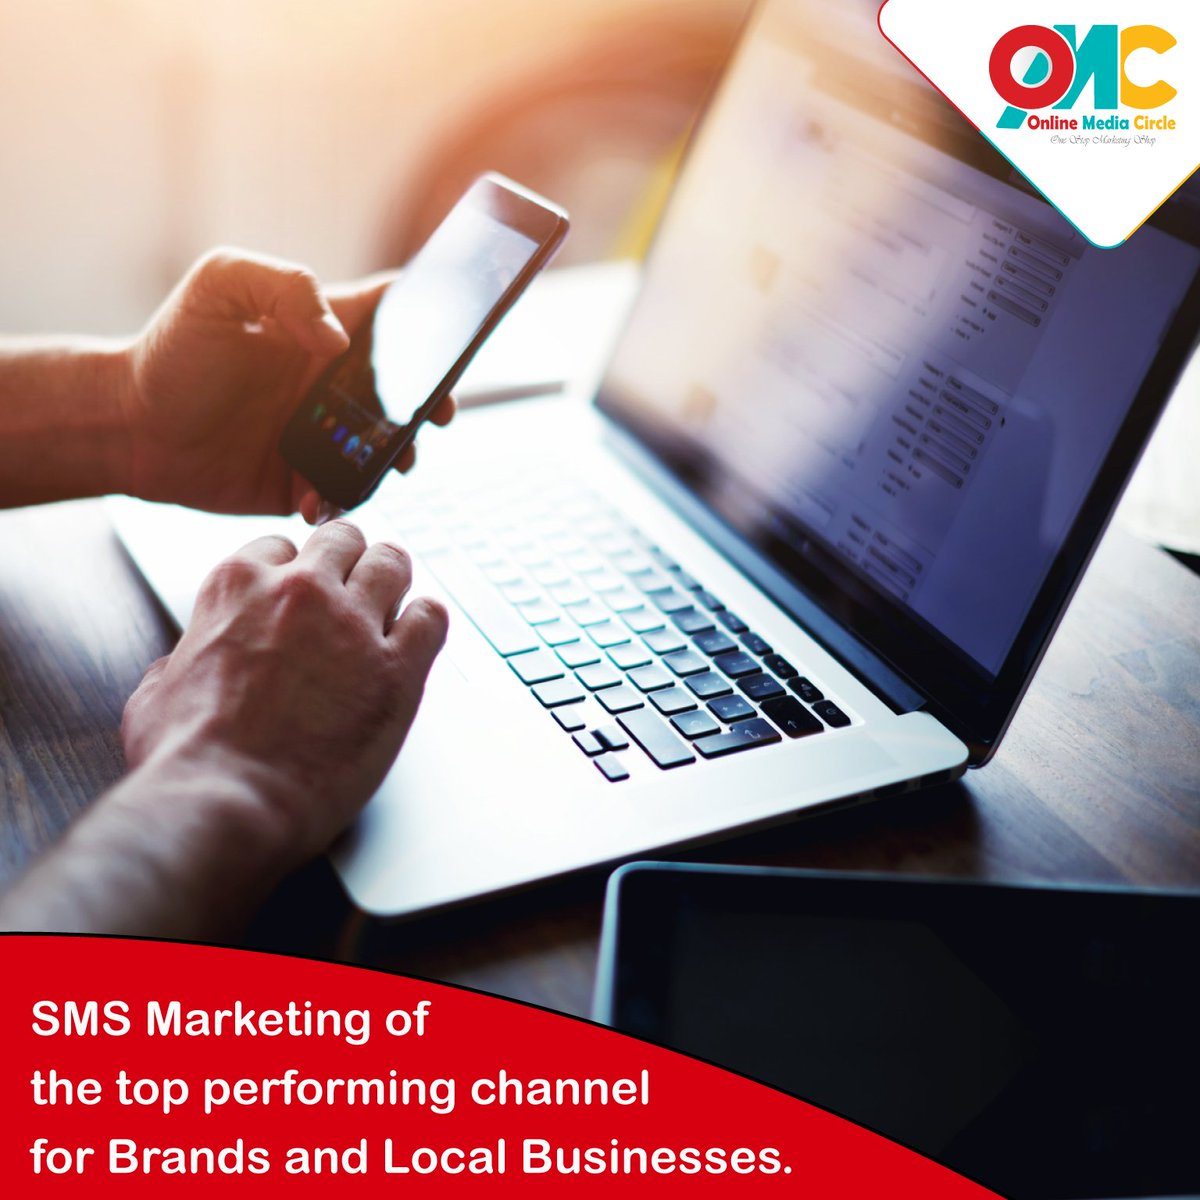 SMS Marketing of the Top Performing Channel for Brands and Local Businesses.  #BrandedSMS #SMSMarketing #BulkSMS #KarachiSMS<br>http://pic.twitter.com/r12T6rRBRb